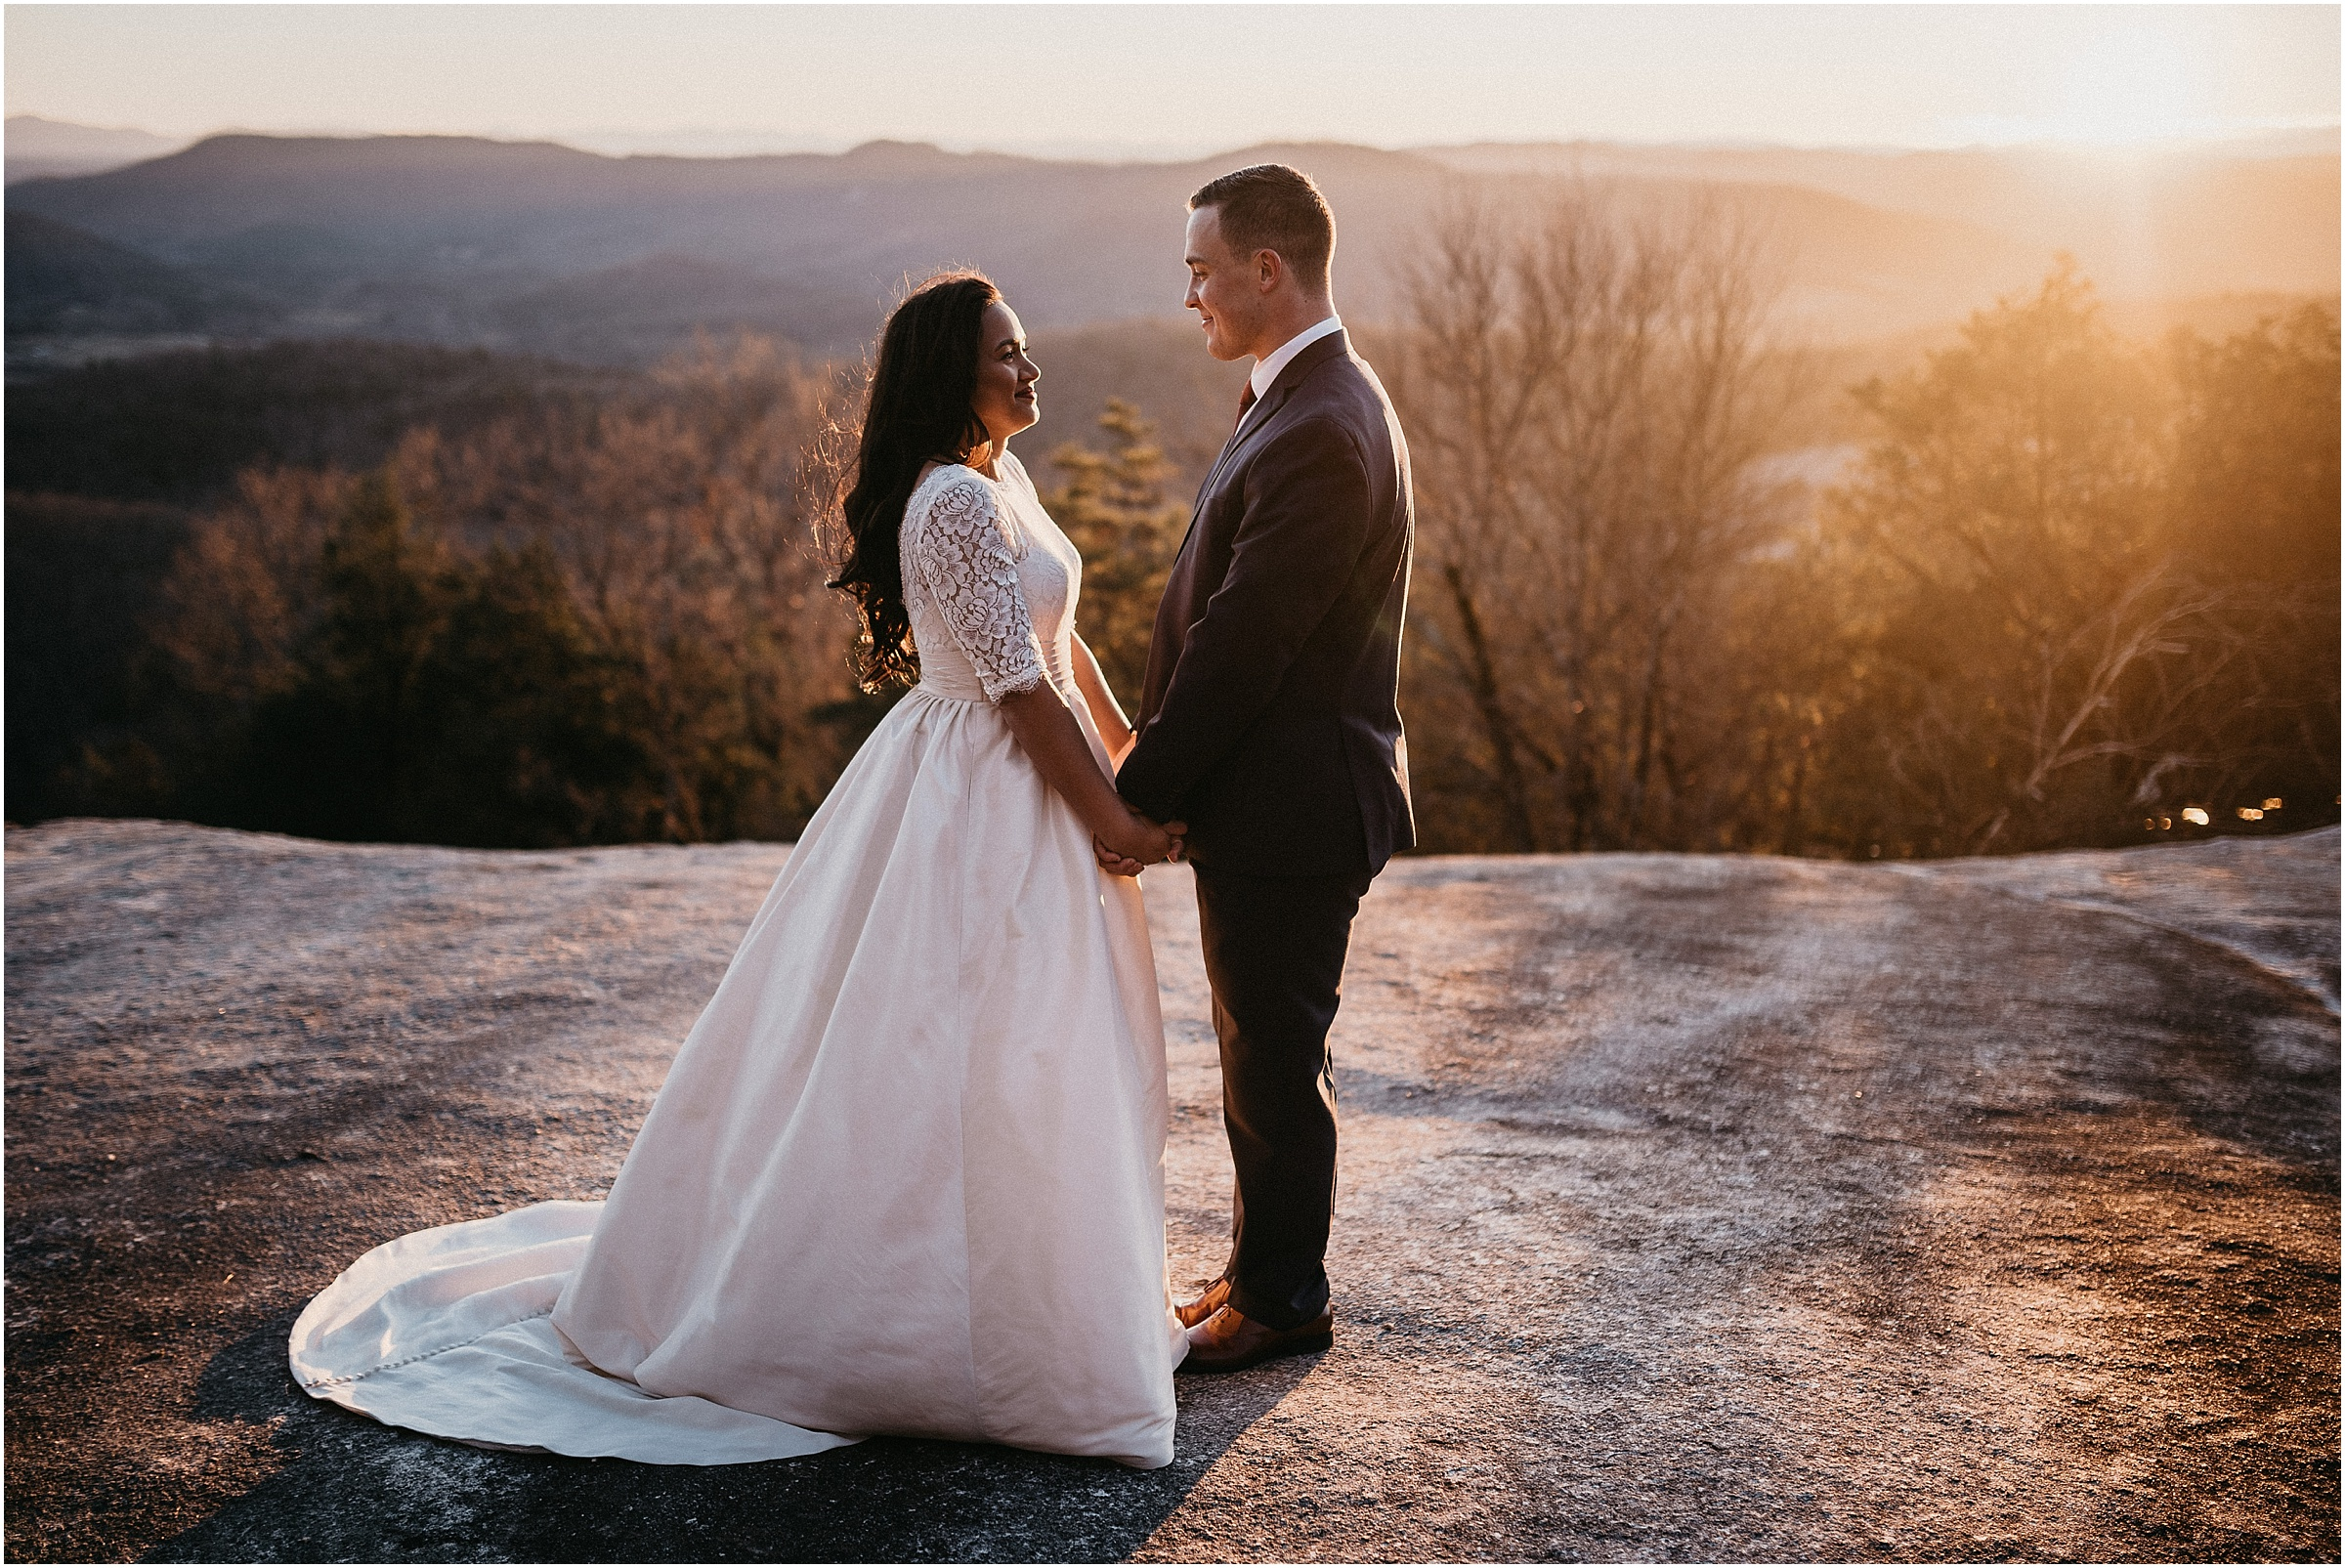 Stone_Mountain_NC_Elopement_43.JPG